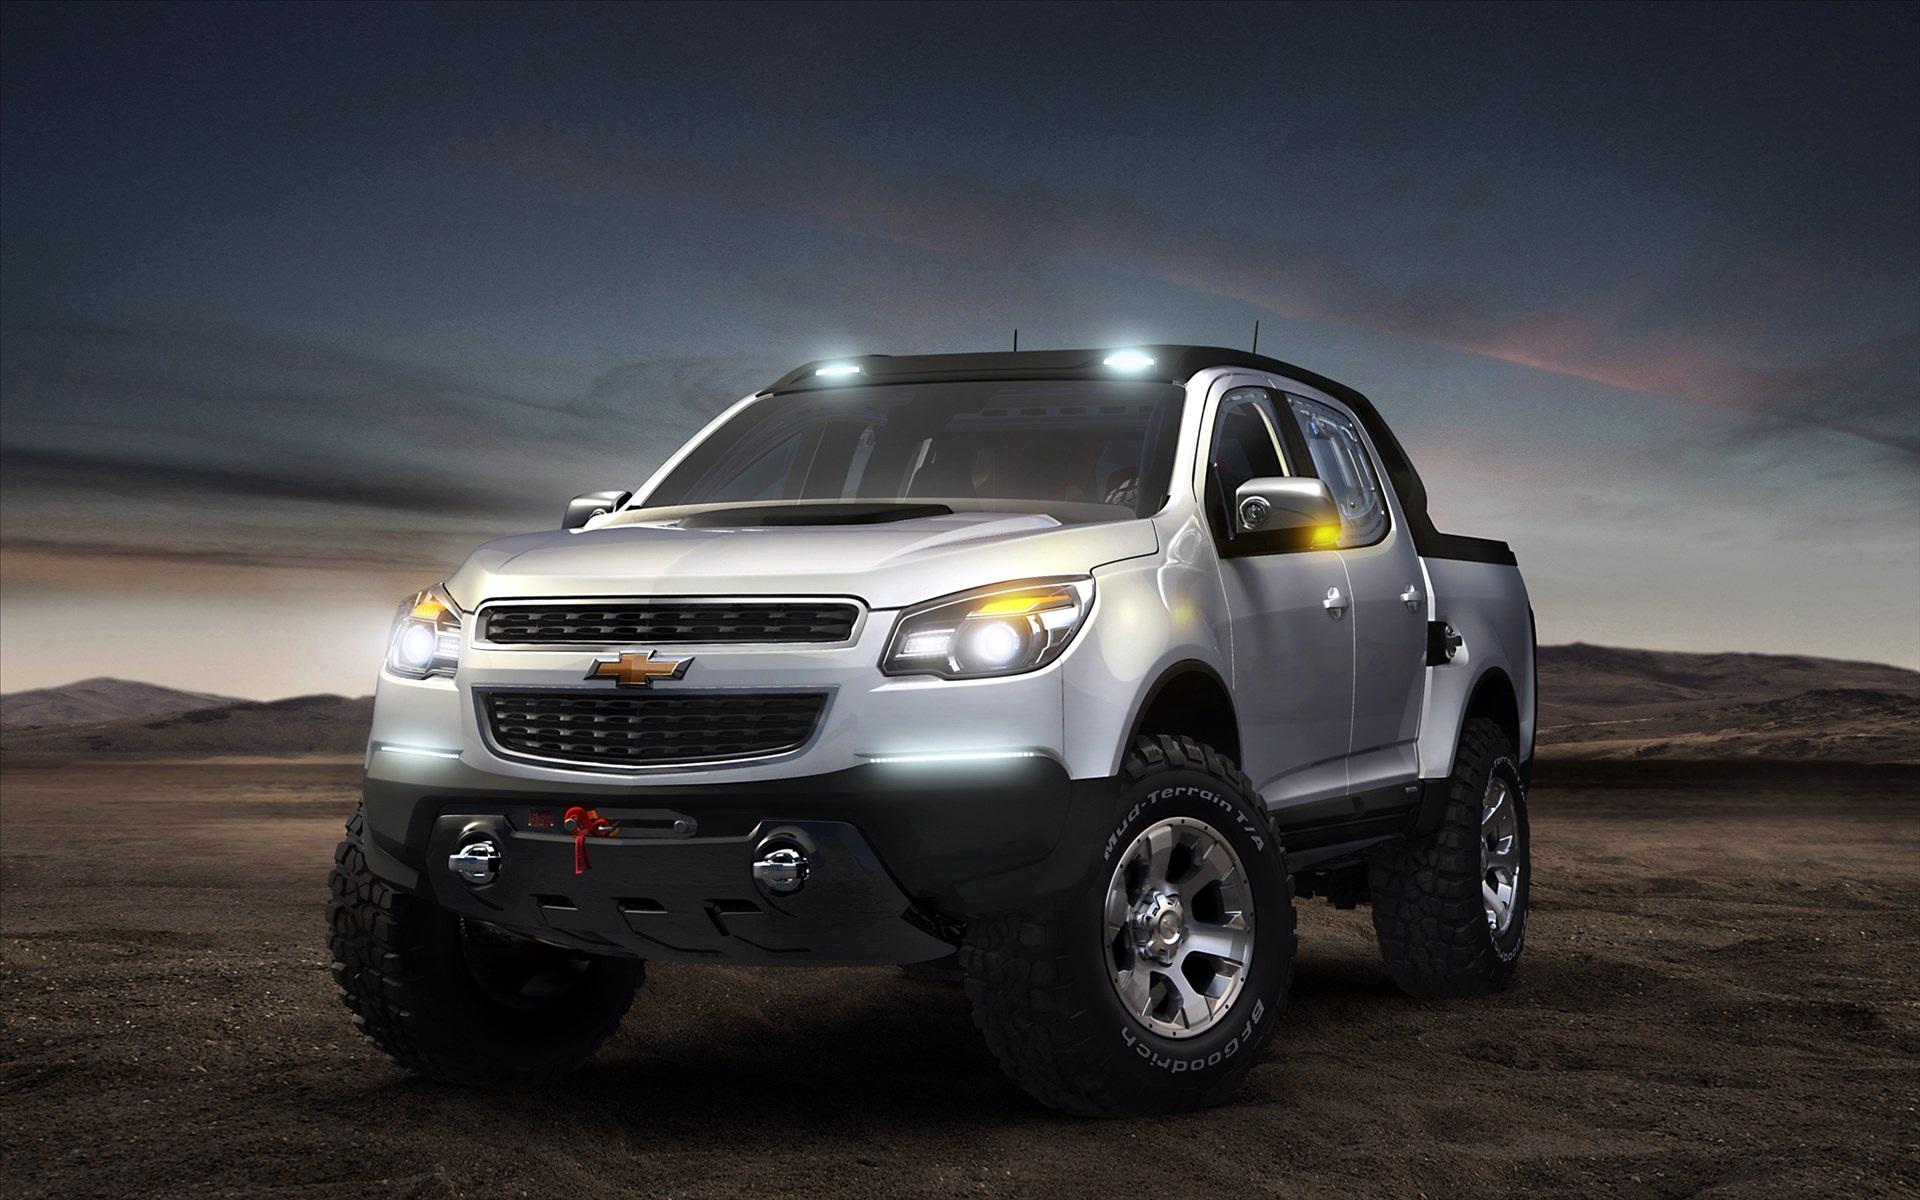 Chevrolet Colorado Rally Concept Car 1270.69 Kb